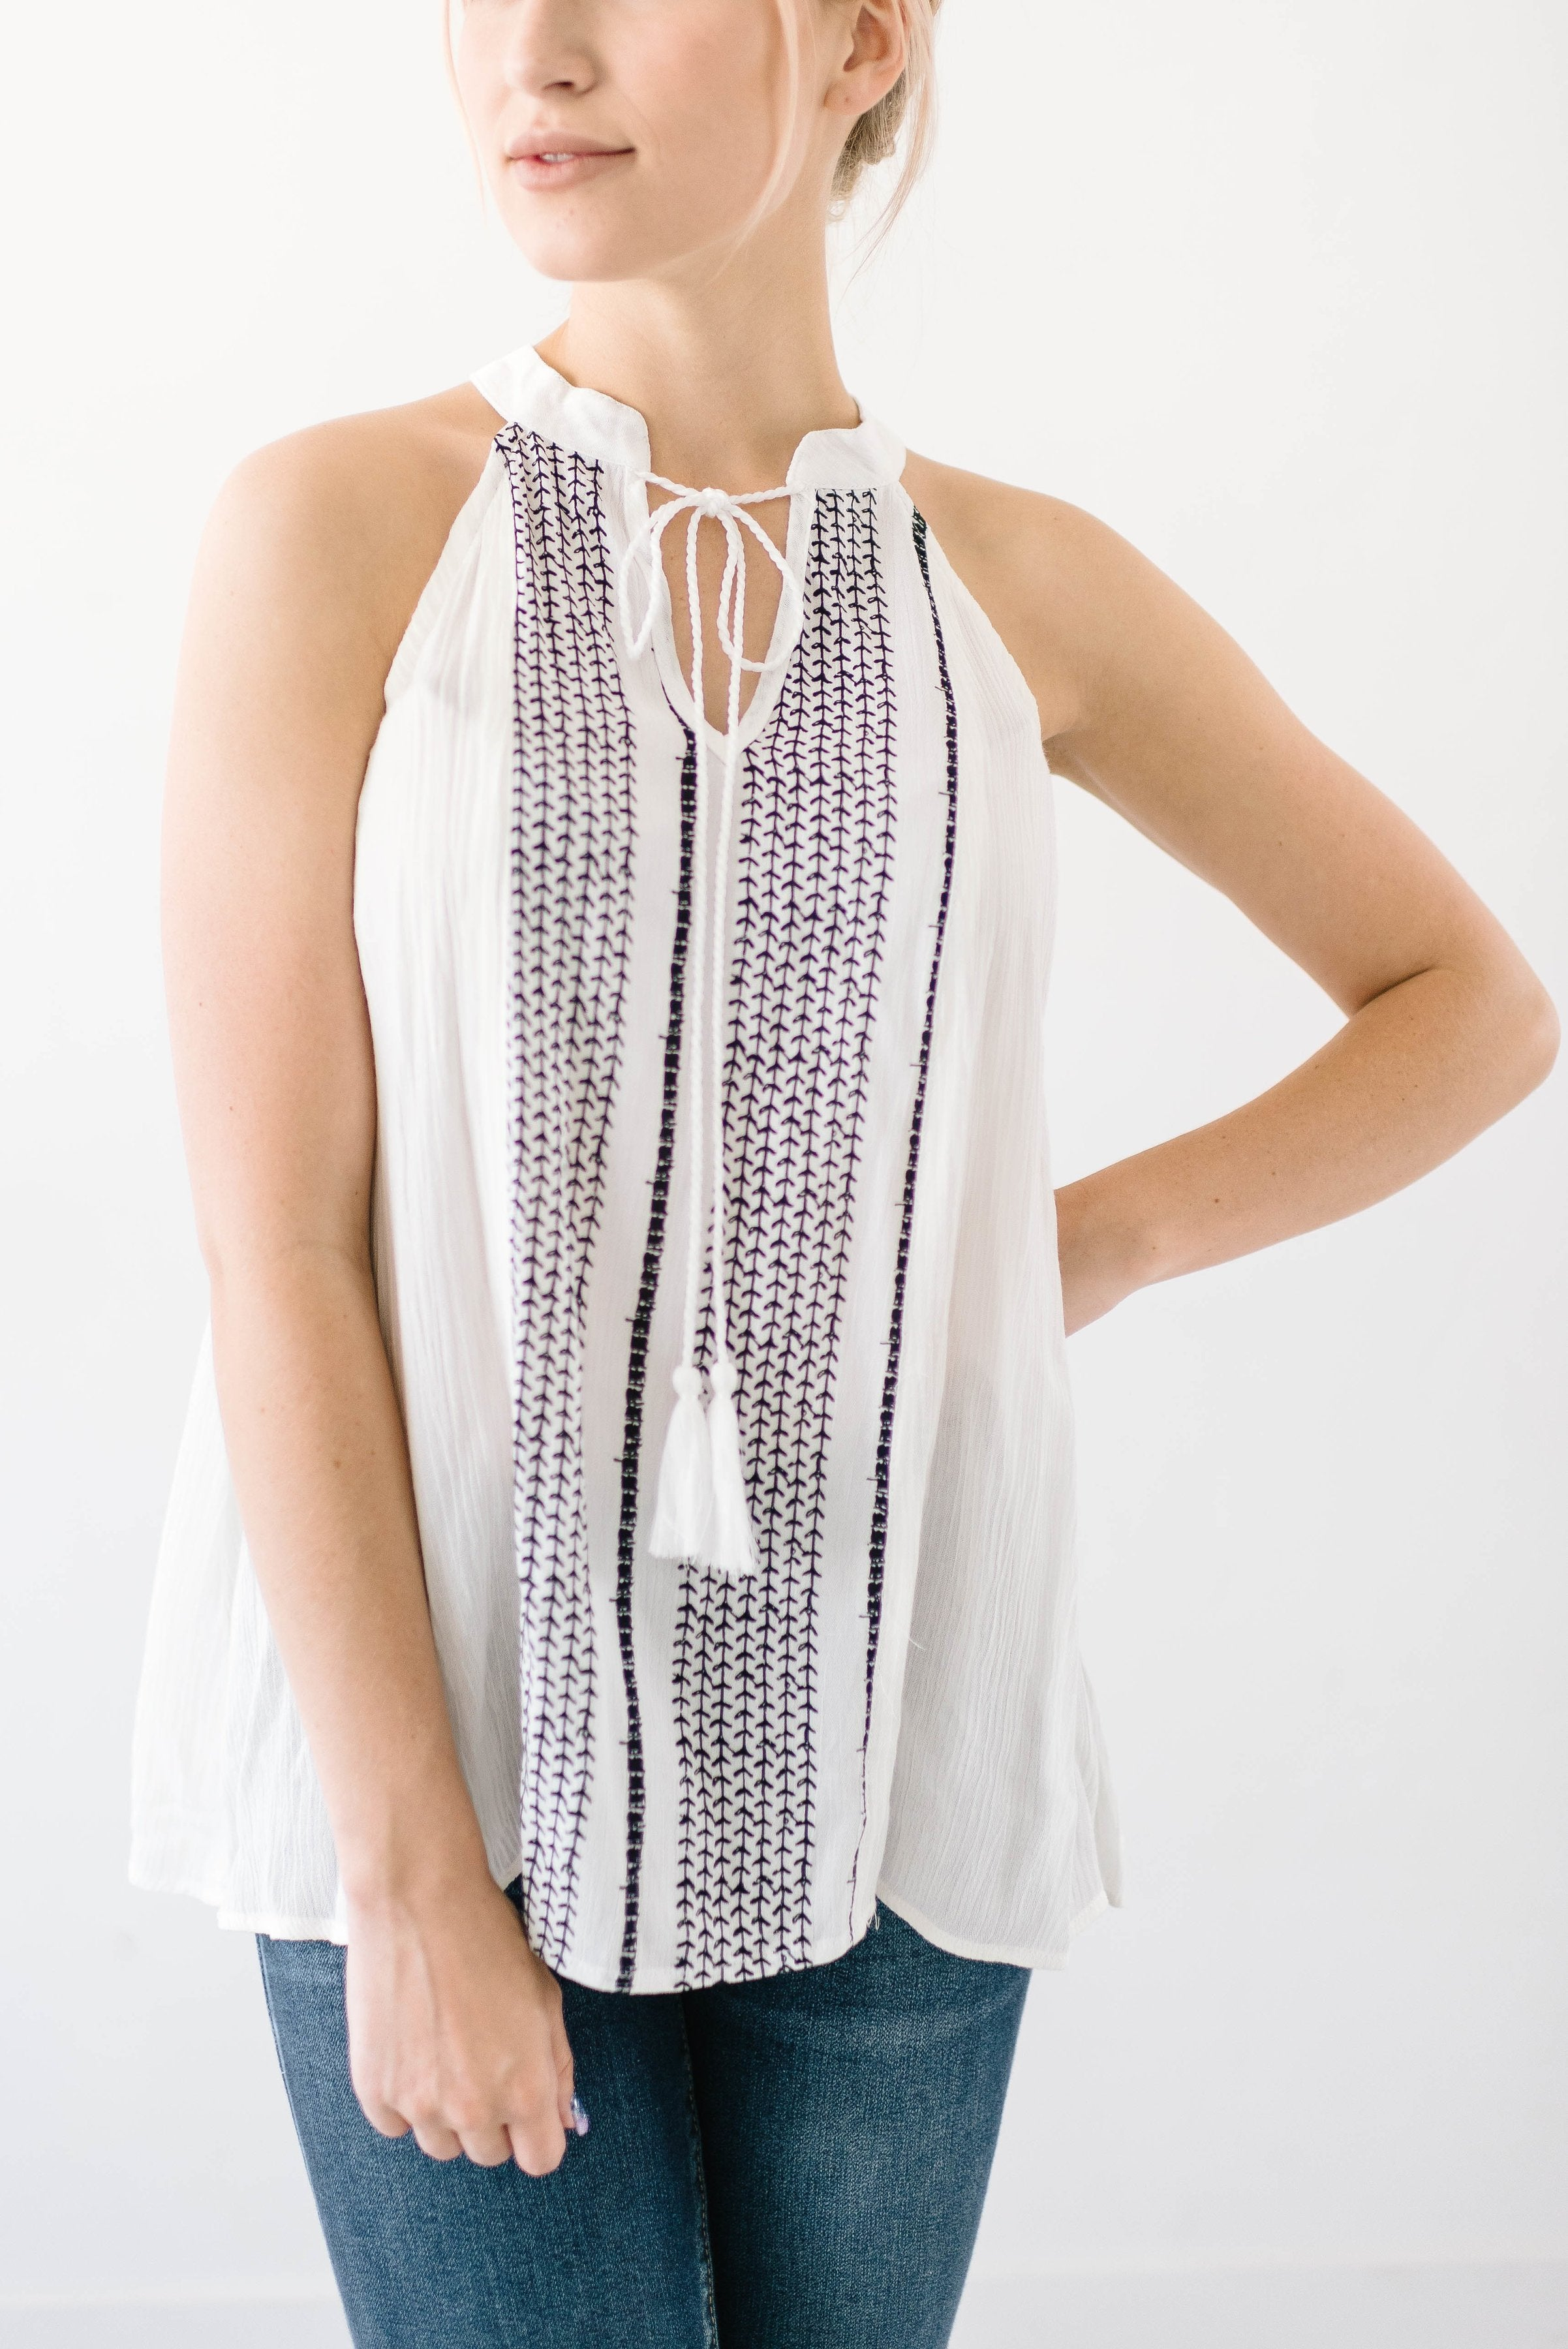 Marketplace Halter